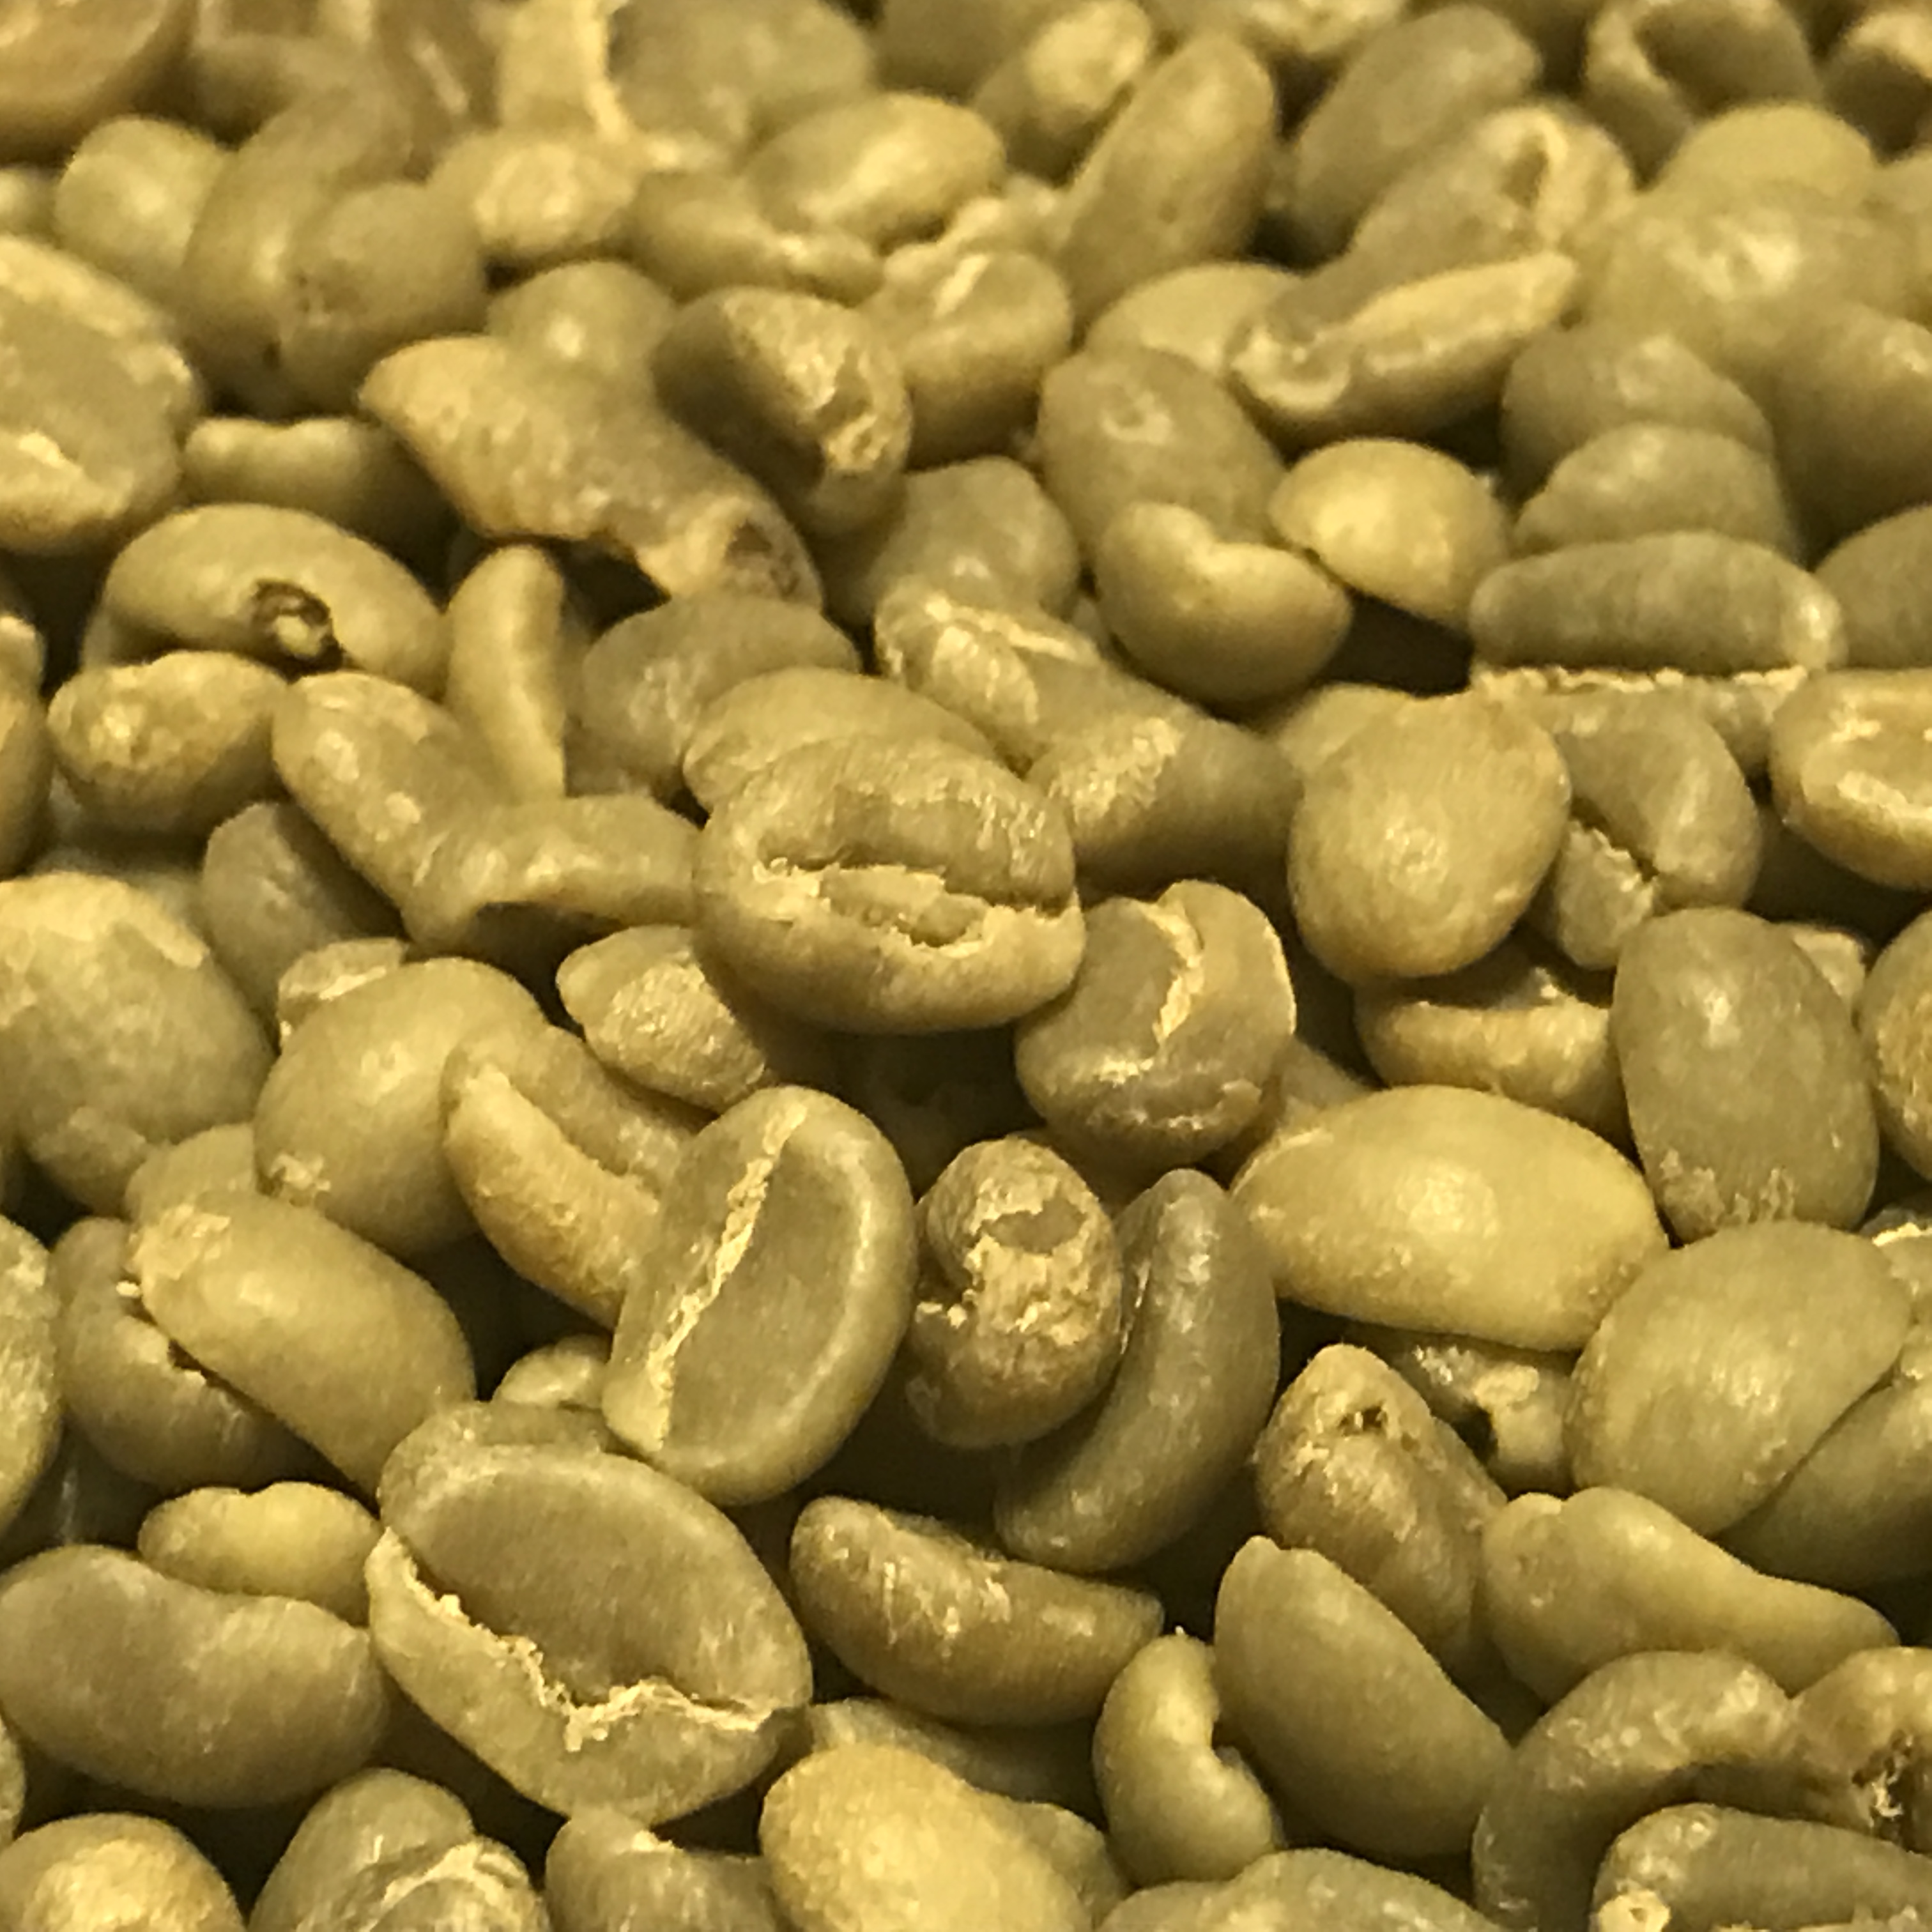 Green Coffee Beans 5 Pounds You Get Free Shipping On 5 Poiunds